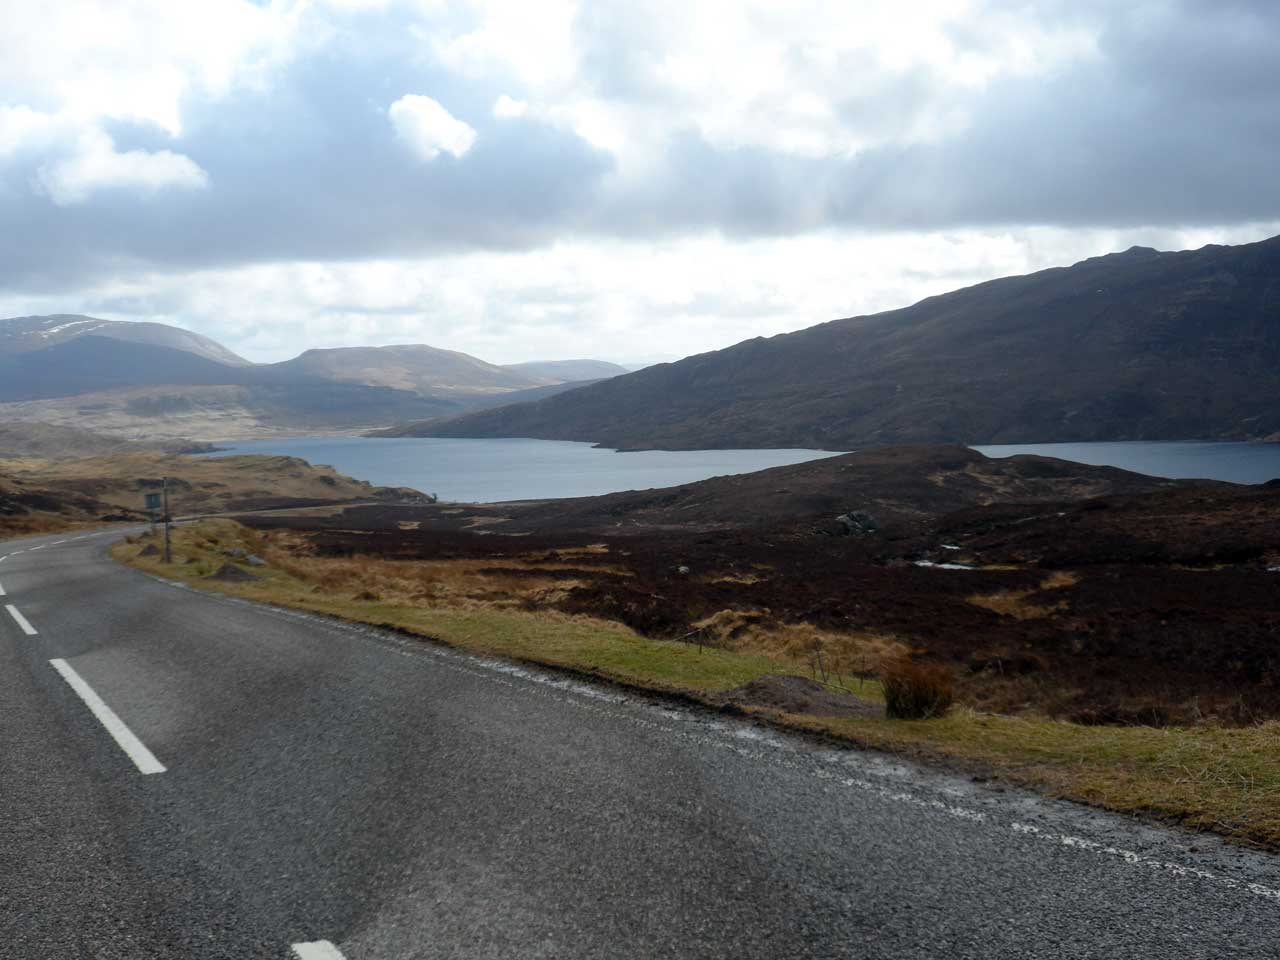 Photo: Kylesku to Lairg A837